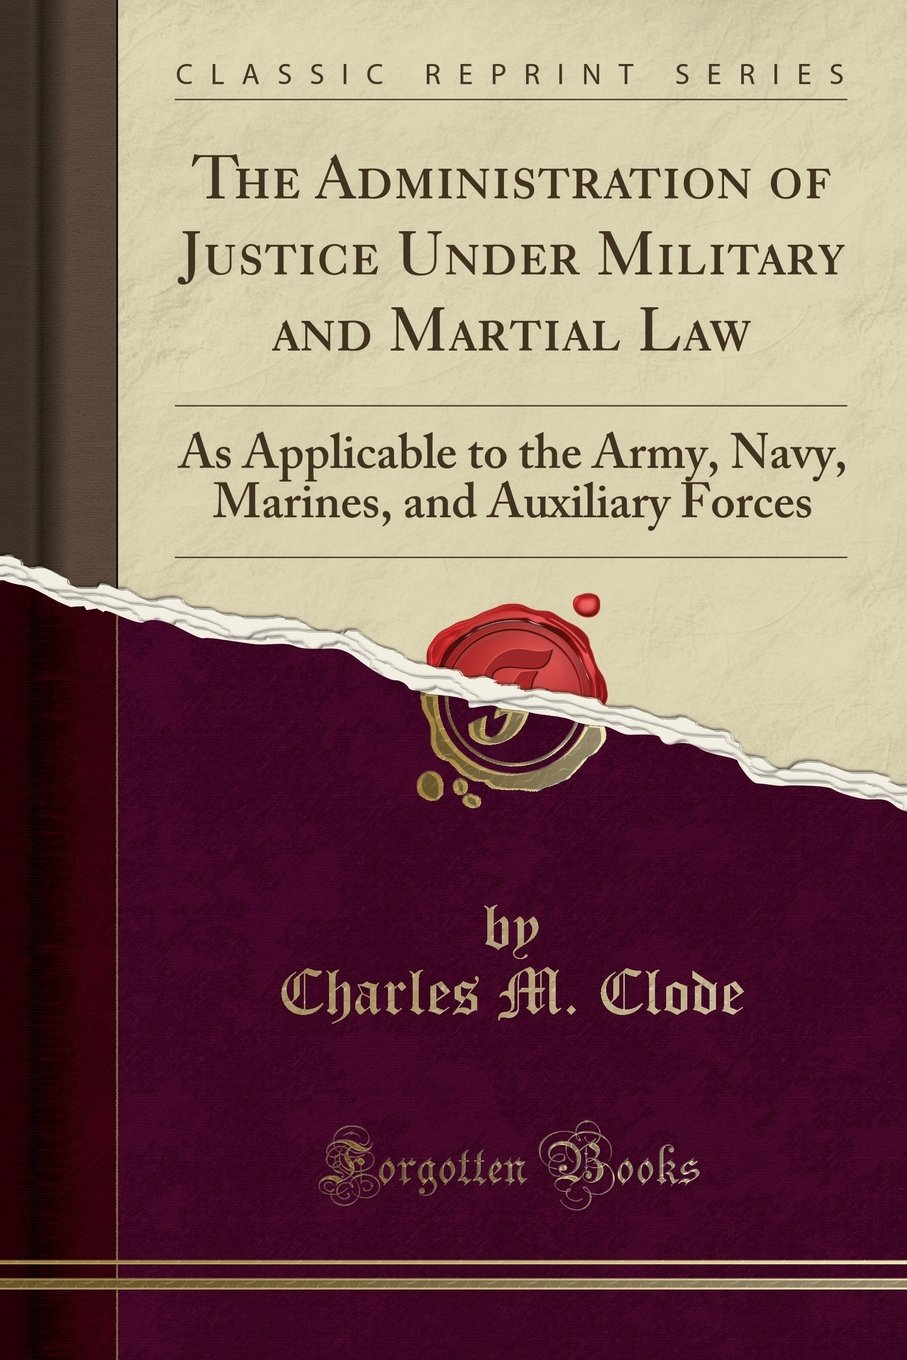 Read Online The Administration of Justice Under Military and Martial Law: As Applicable to the Army, Navy, Marines, and Auxiliary Forces (Classic Reprint) PDF